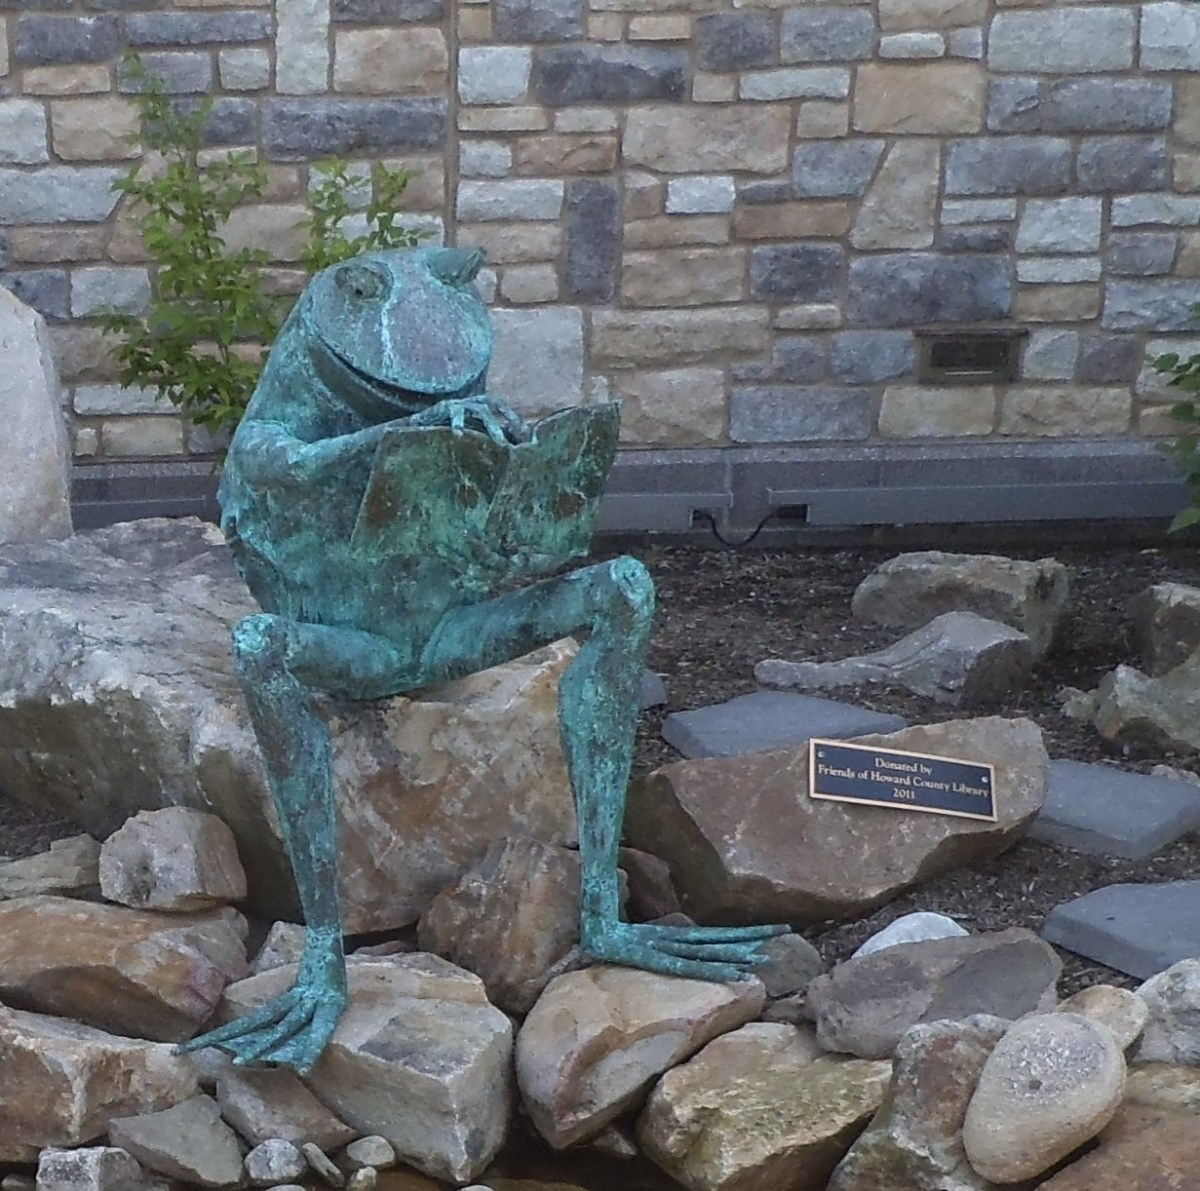 This playful frog reading a book is outside a library in Maryland. Notice the plaque telling who donated the figure.